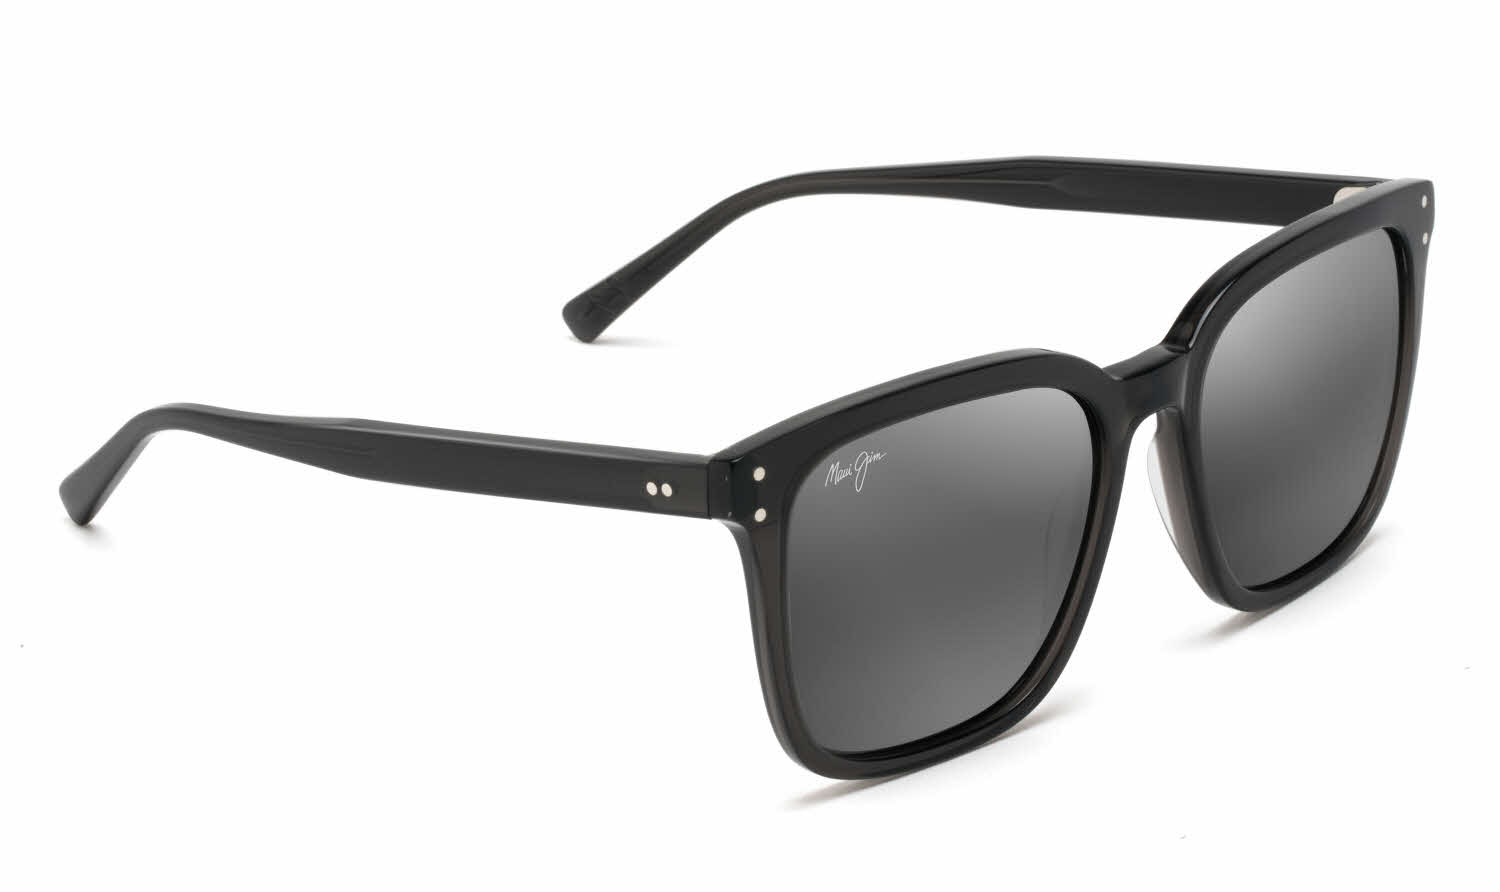 a8e96da8f7 Maui Jim Westside-803 Sunglasses